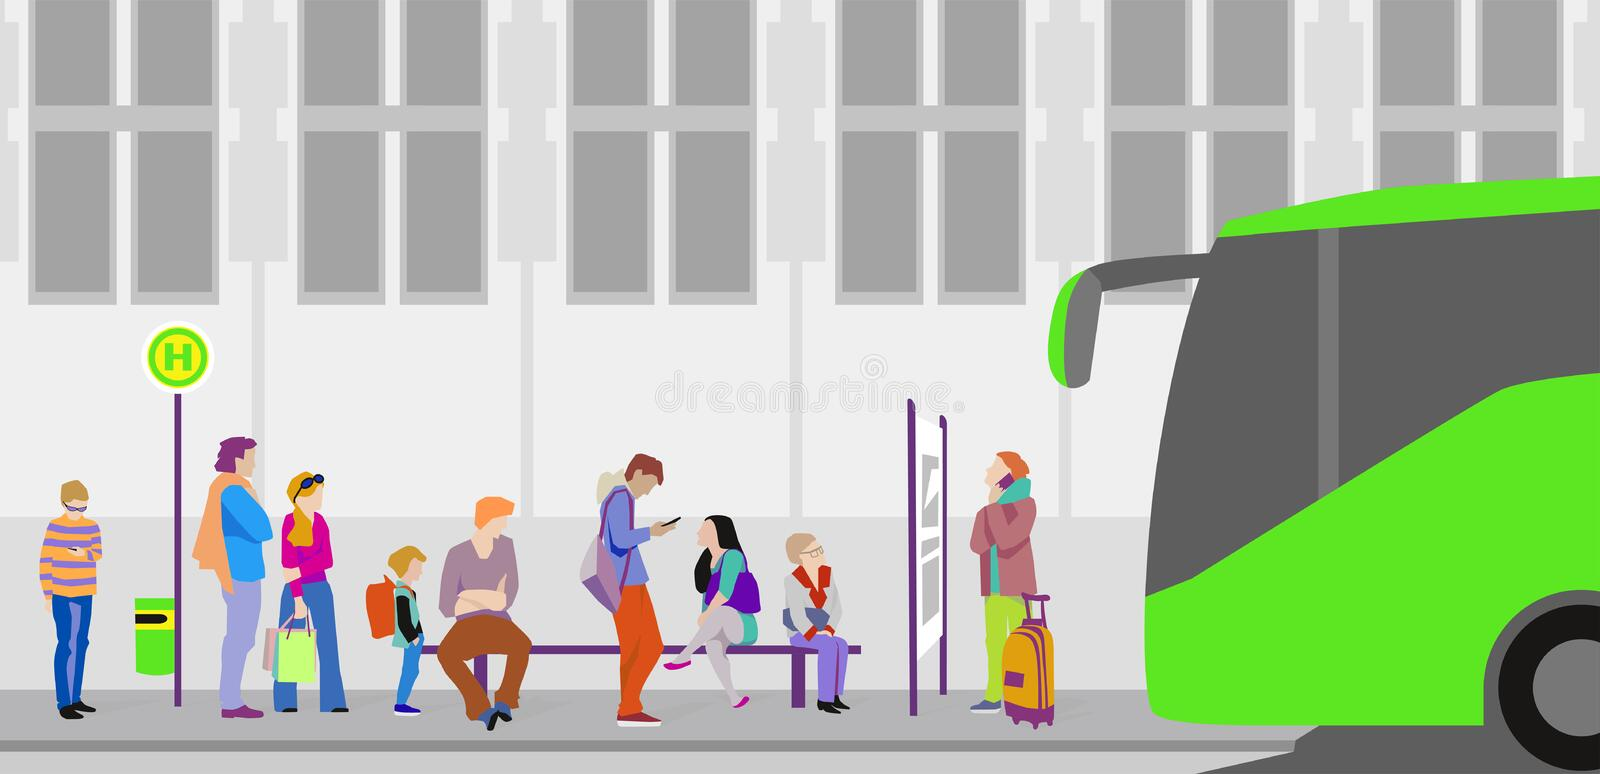 People waiting for the bus at bus stop vector illustration